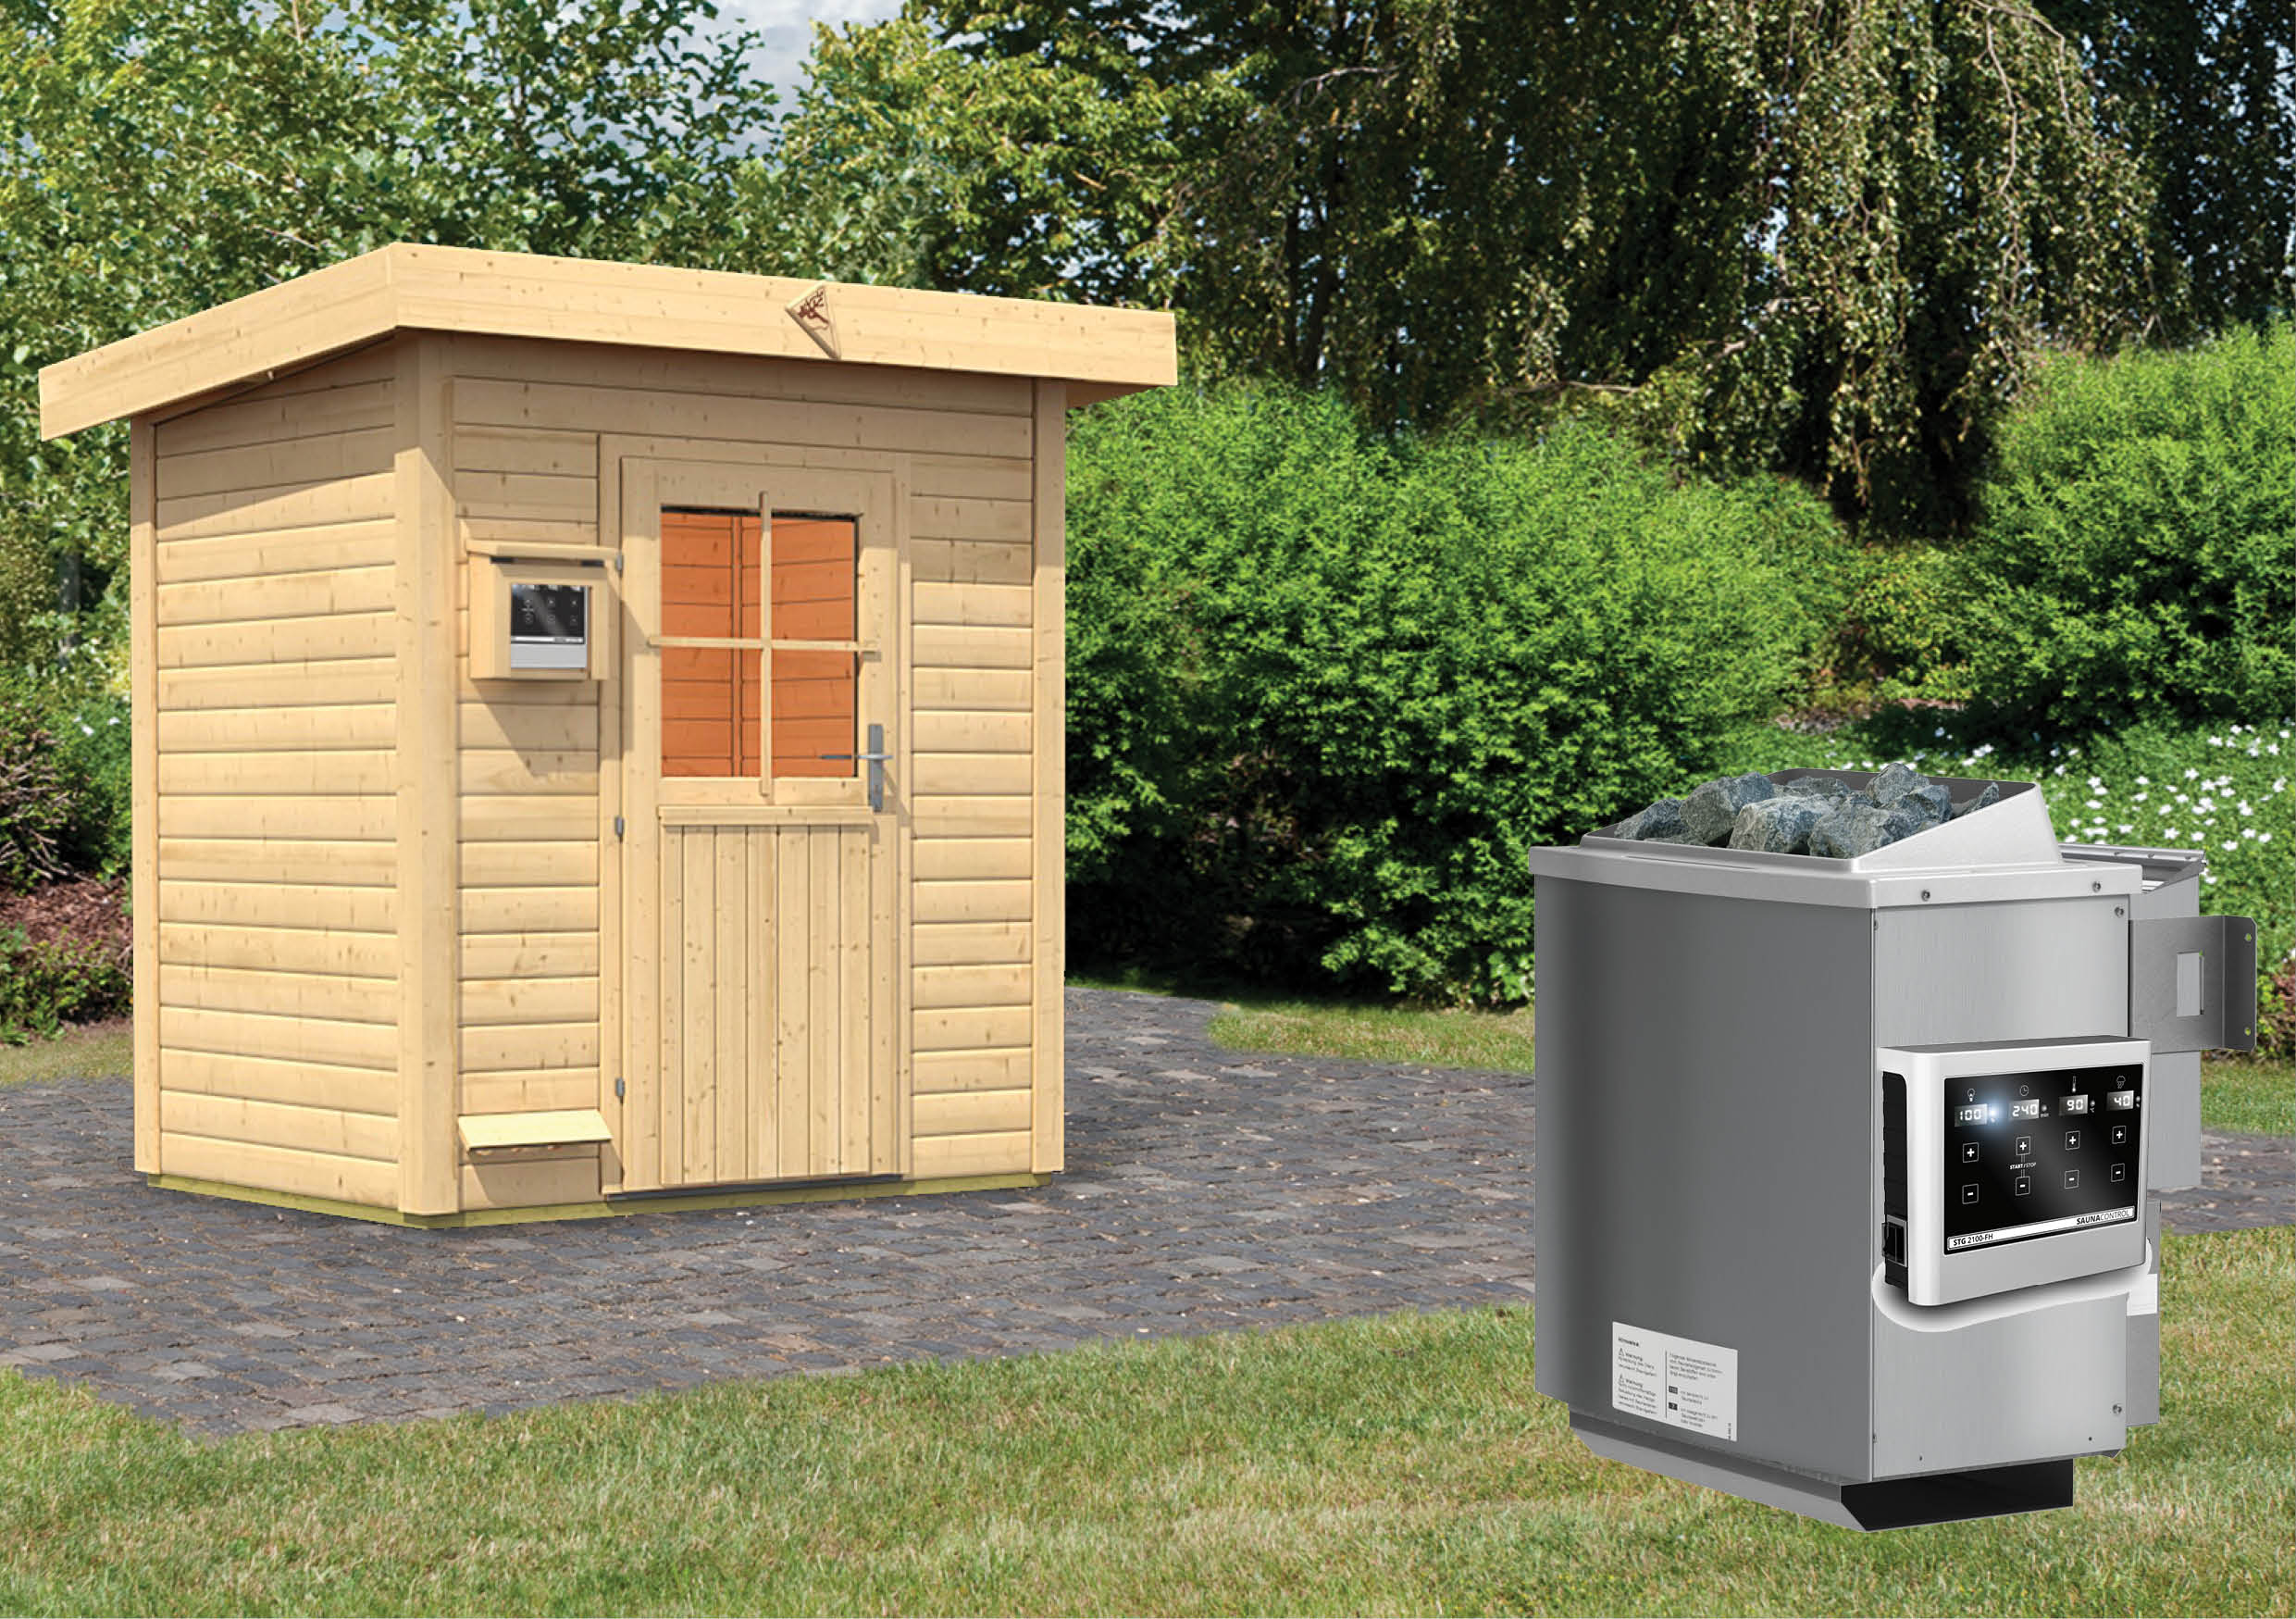 karibu gartensauna jorgen 1 96 x 1 46 m 38 mm mit 9 kw. Black Bedroom Furniture Sets. Home Design Ideas